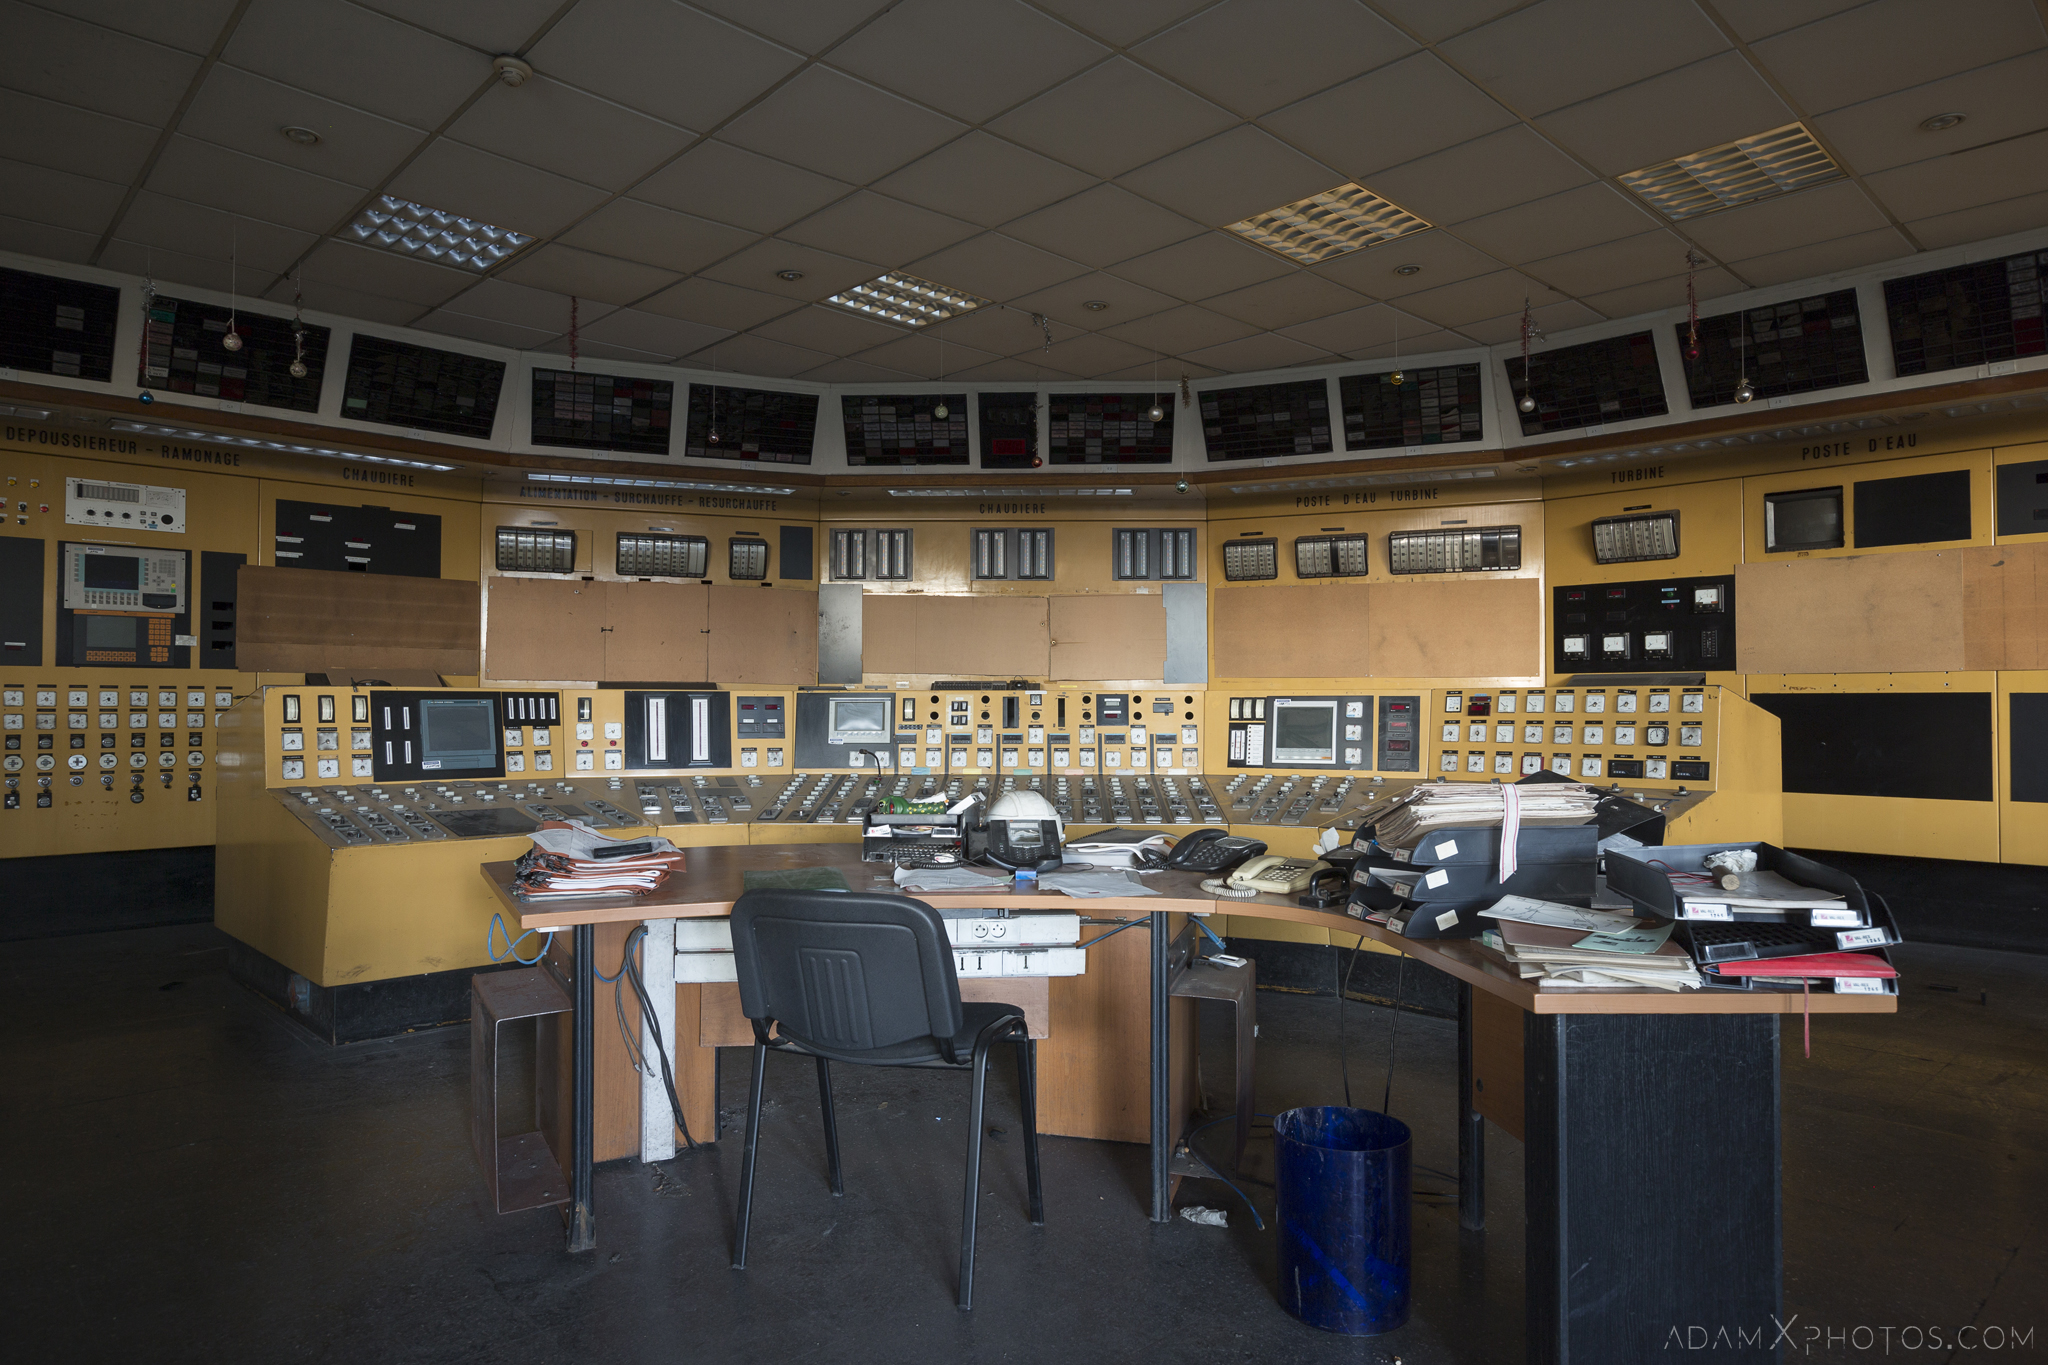 Yellow control room desk units Centrale de schneider powerplant power plant industrial industy Adam X Urban Exploration France Access 2017 Abandoned decay lost forgotten derelict location creepy haunting eerie